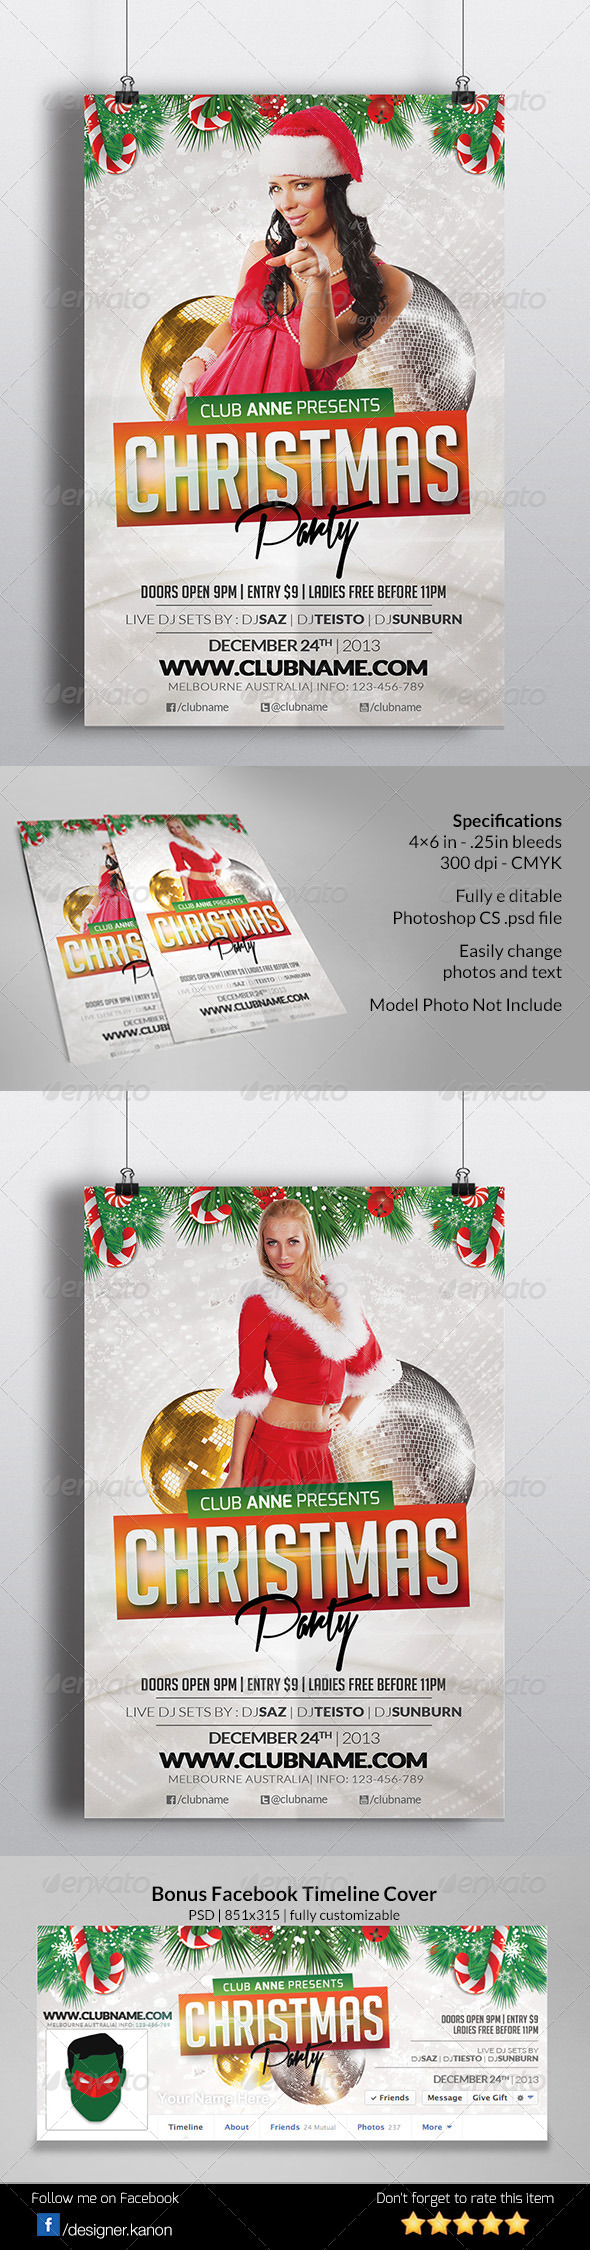 Christmas Event Flyer + Facebook Cover - Events Flyers